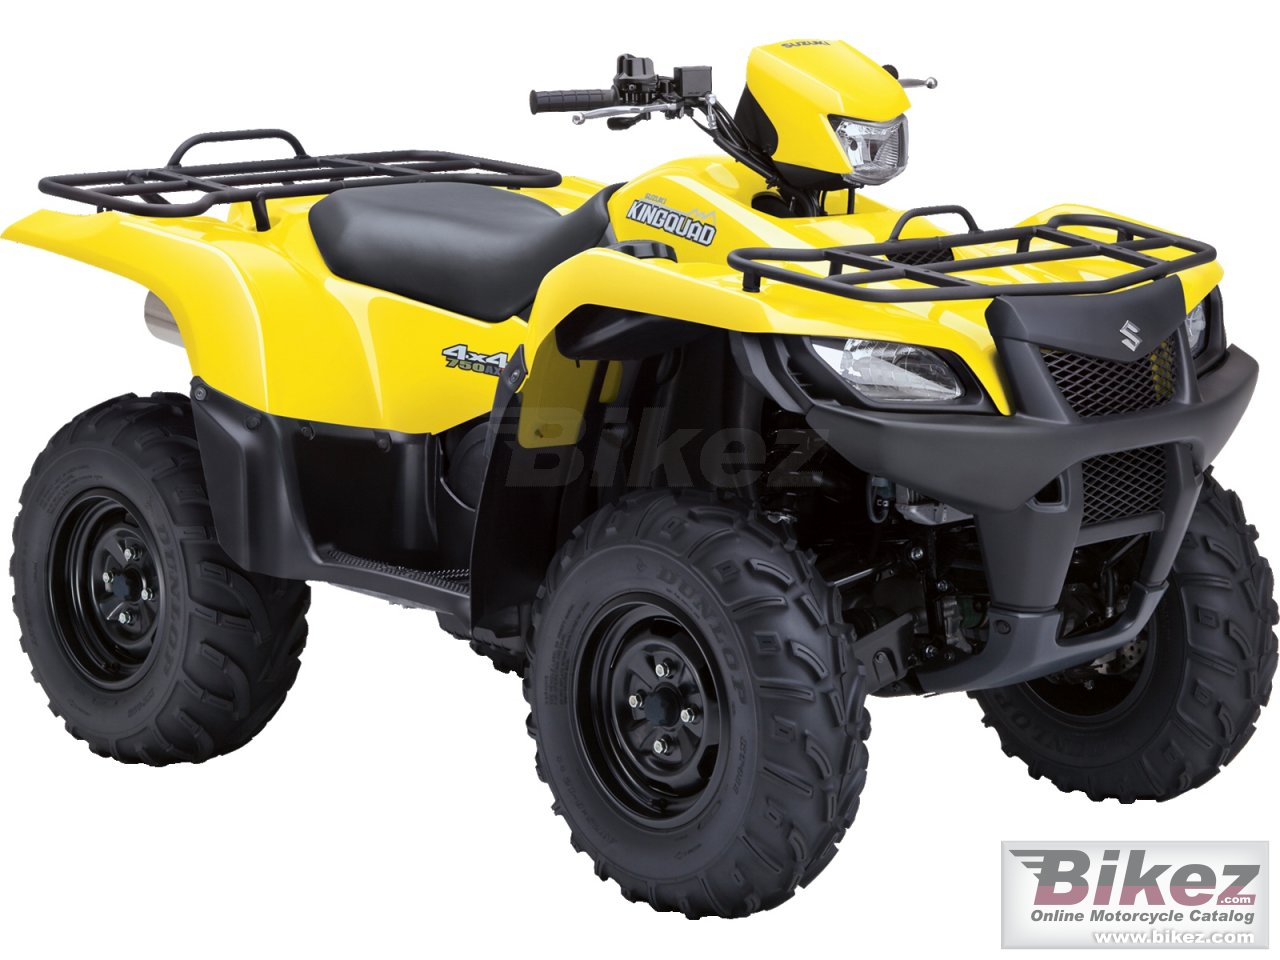 Big Suzuki kingquad 750axi picture and wallpaper from Bikez.com